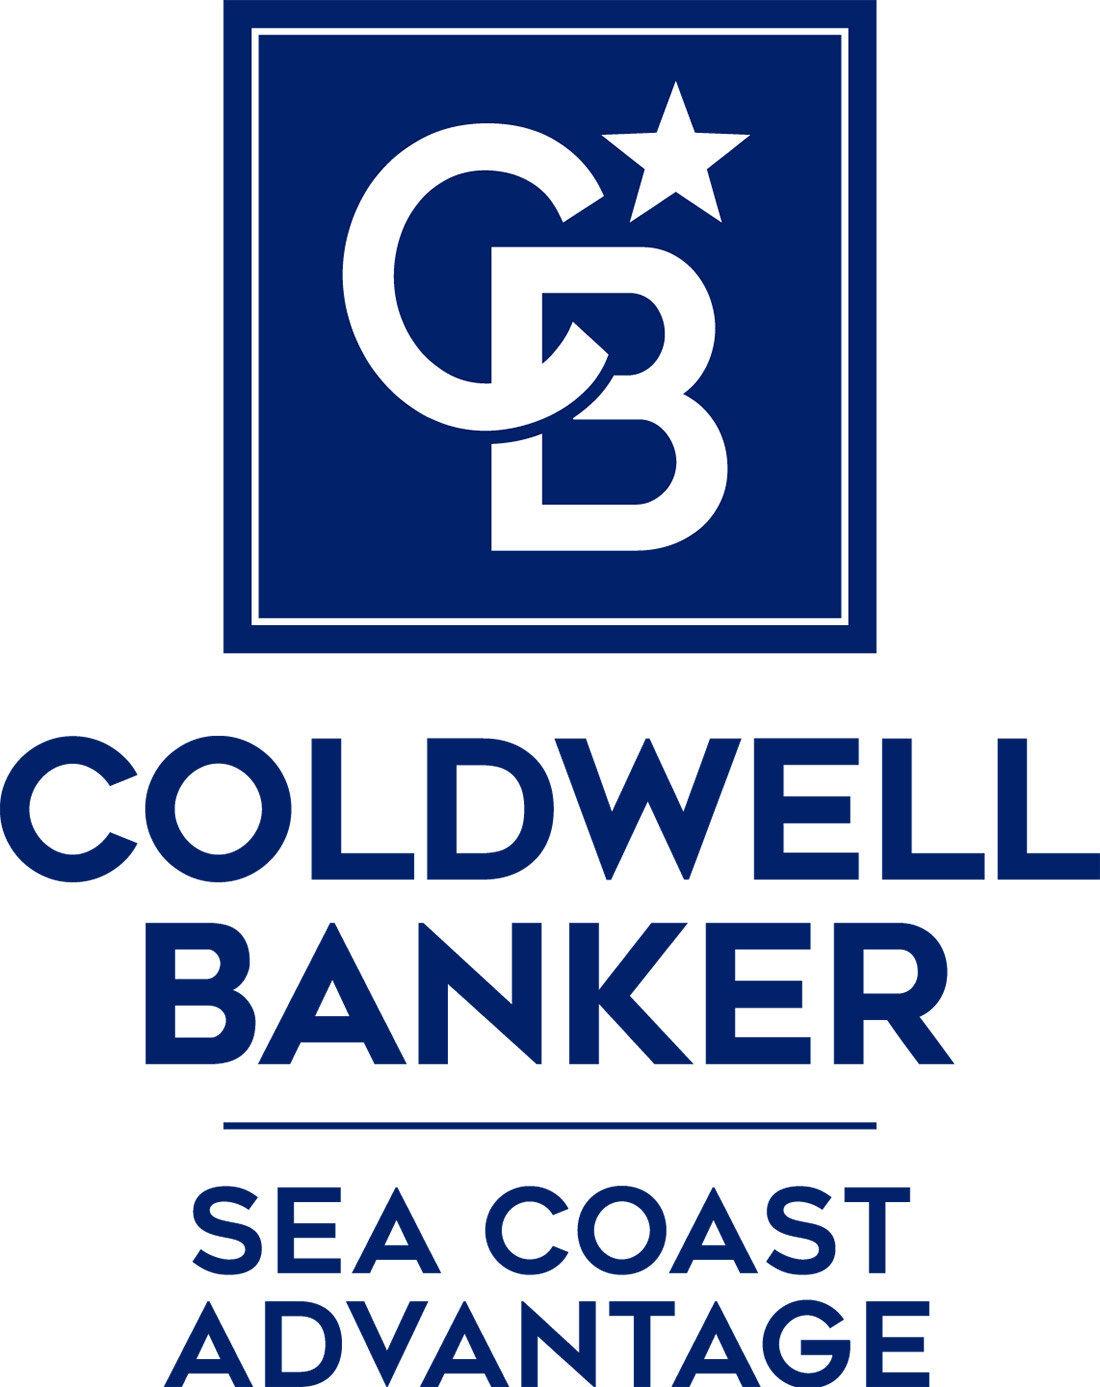 Kathy Trimble - Coldwell Banker Sea Coast Advantage Realty